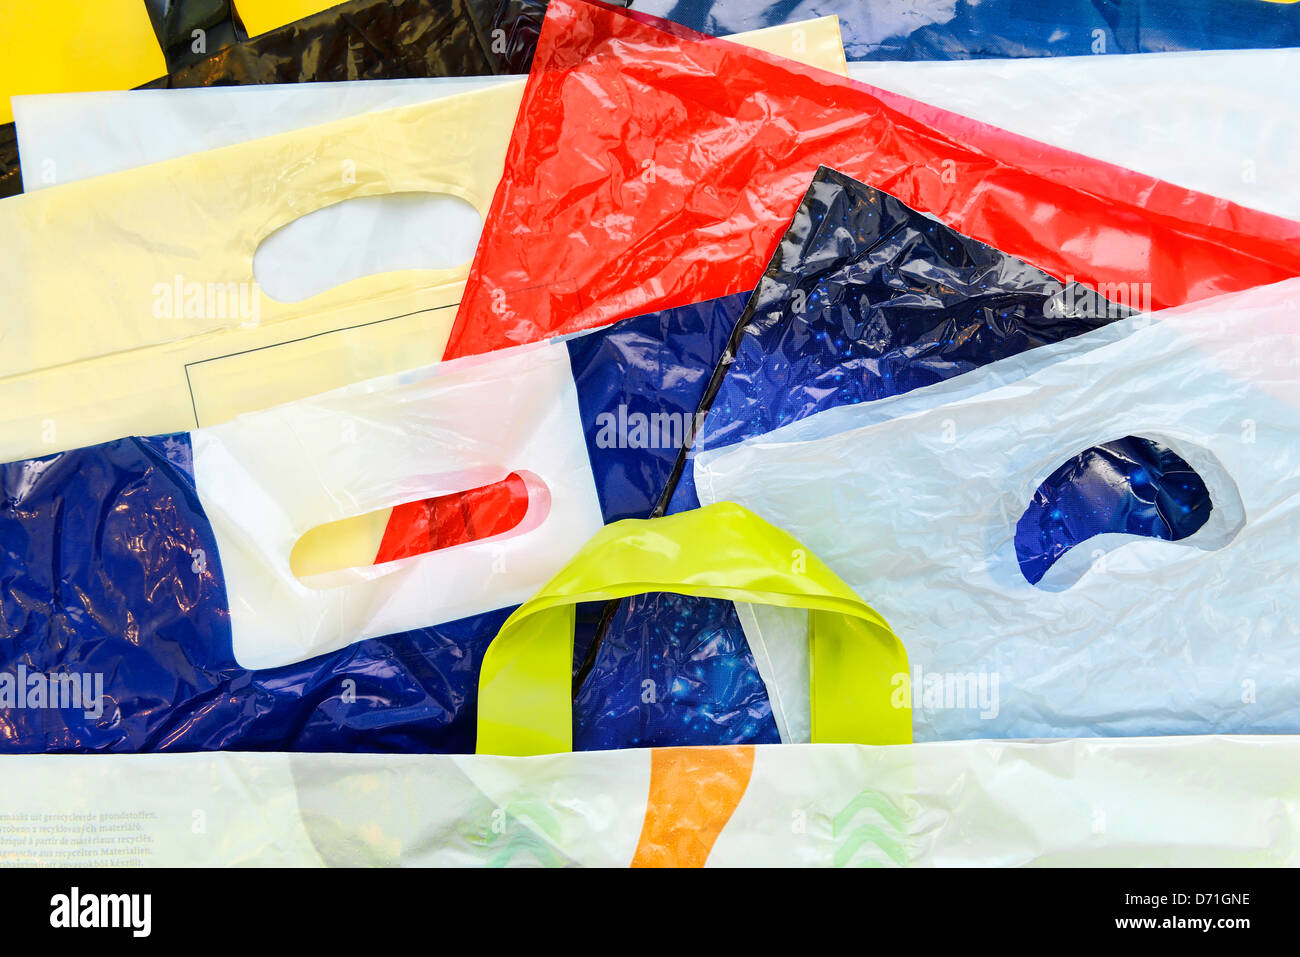 Shopping bags, plastic bags - Stock Image